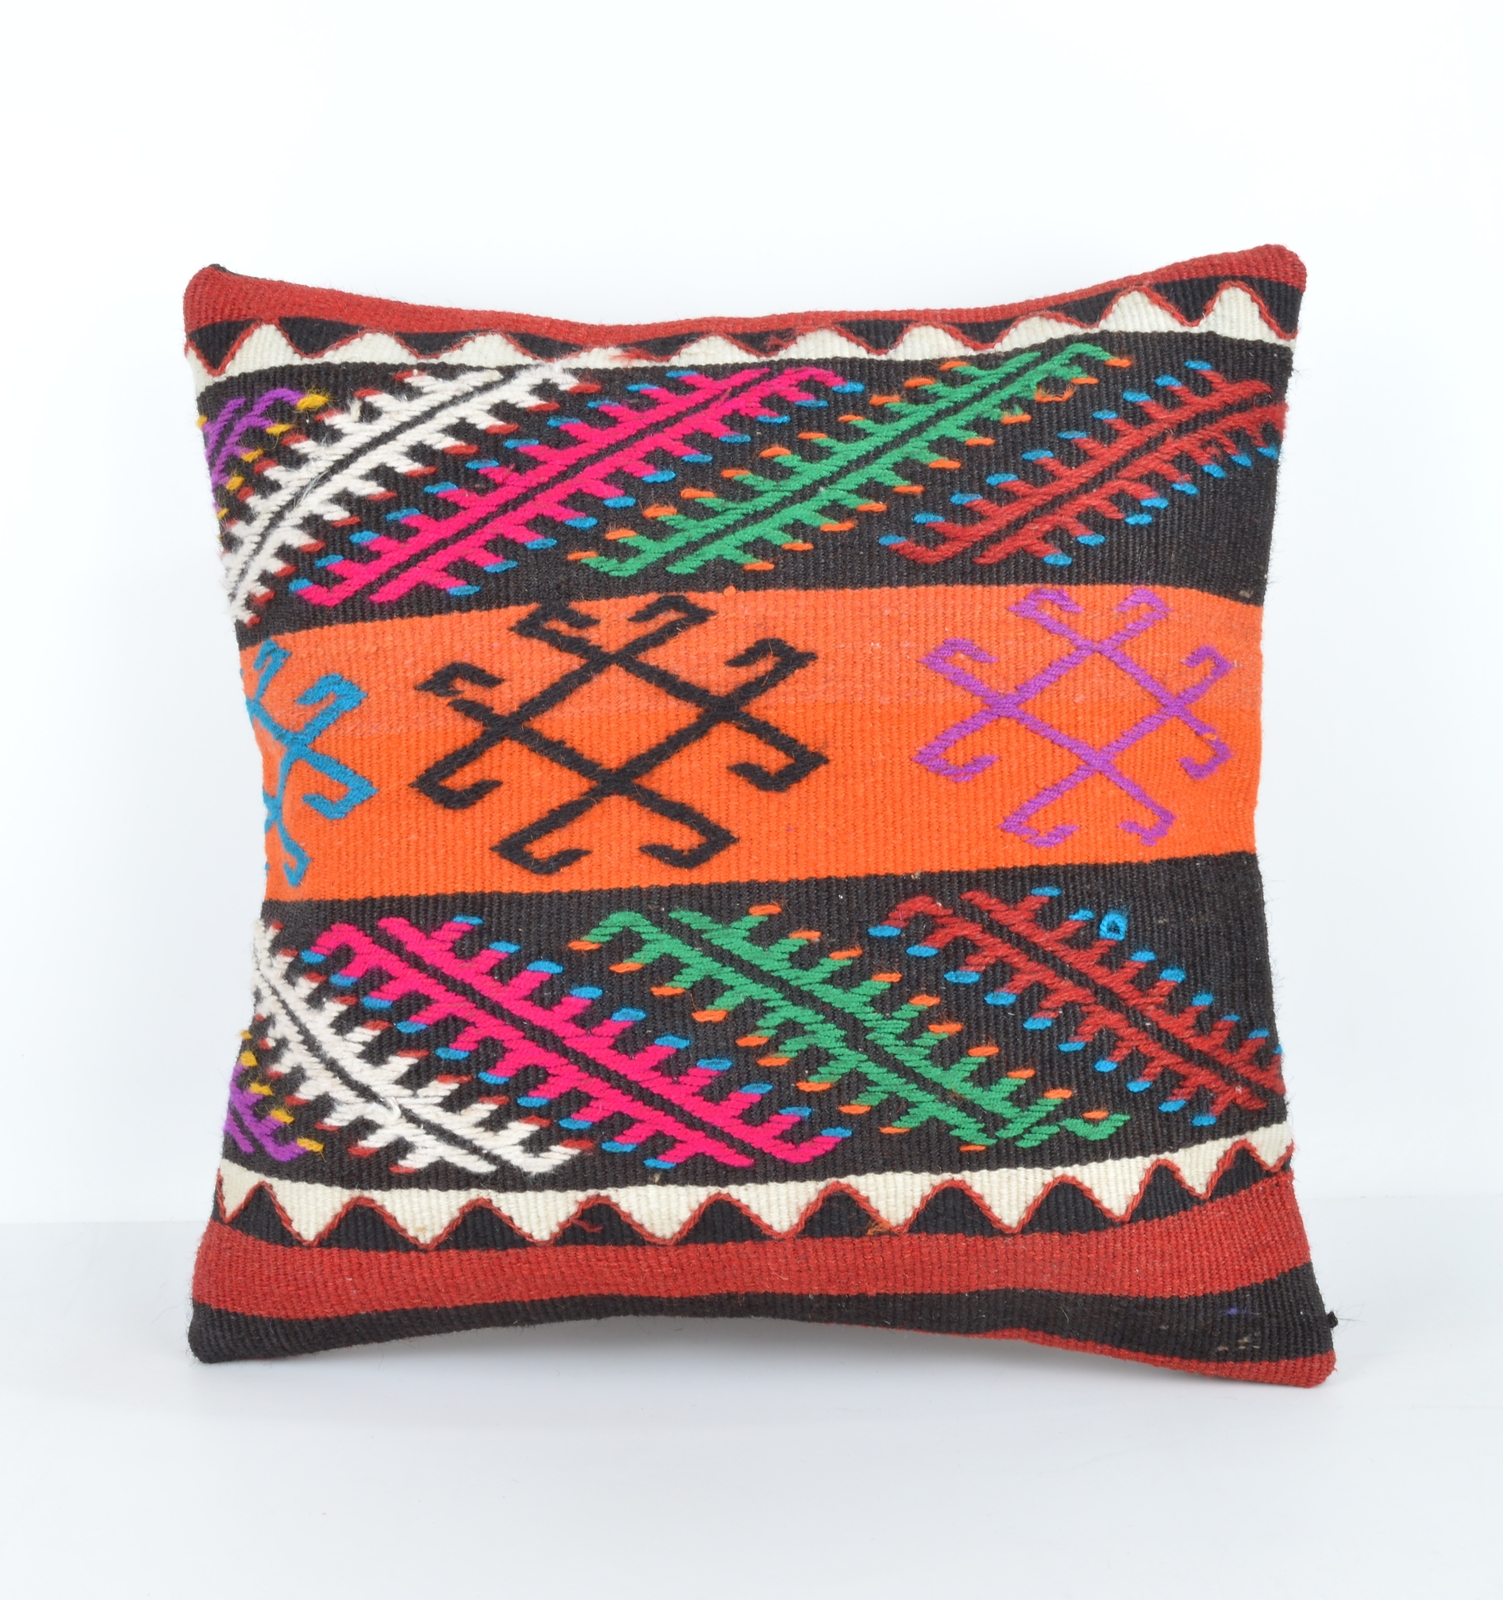 Modern Moose Pillows : Cushion cover,Modern decor,Colorful pillow,Kilim Bolster,Rustic Decor 16x16 inch - Pillows